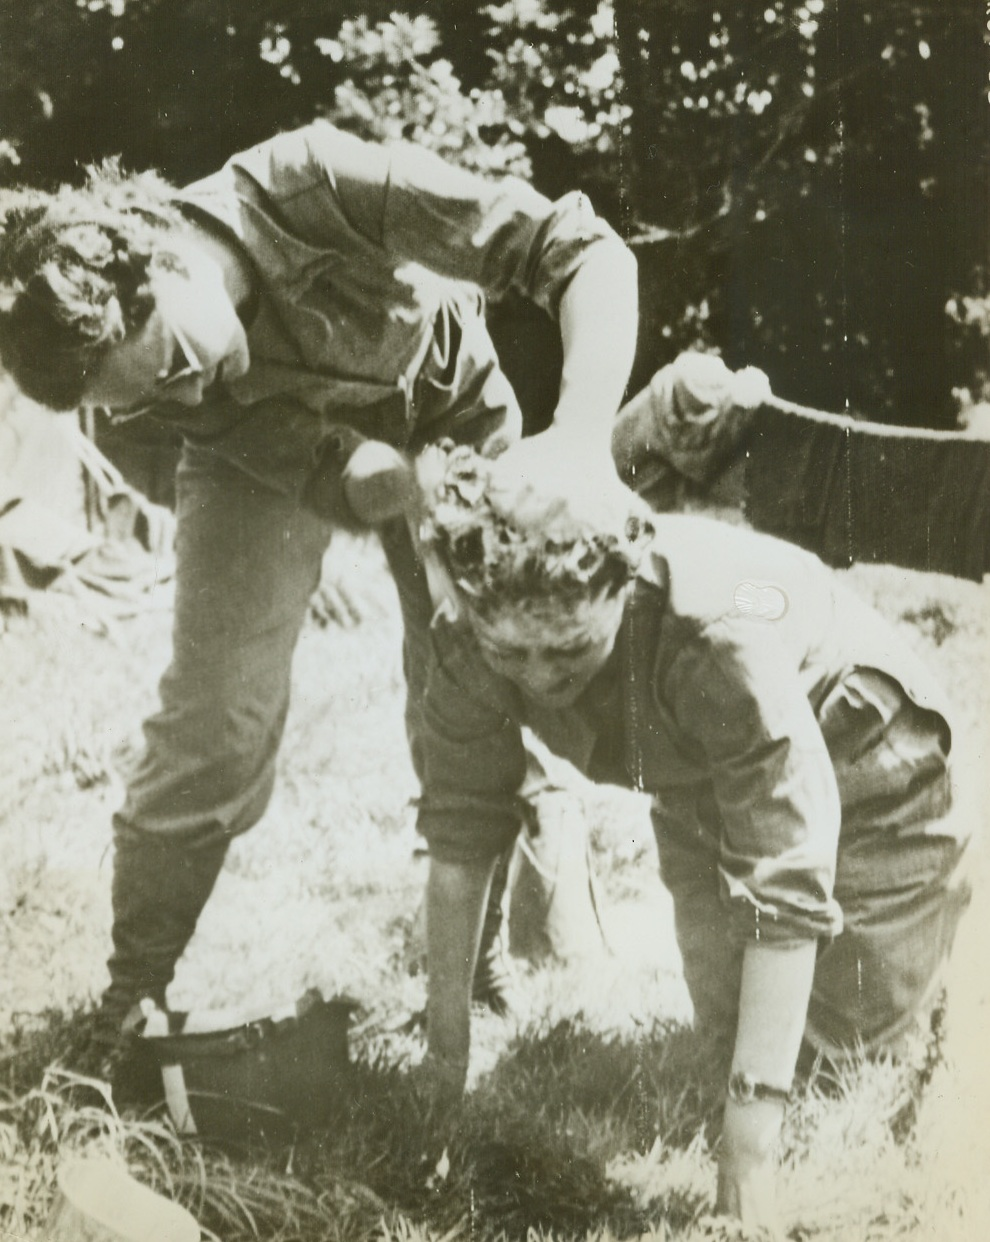 """""""SISTERS OF THE SUDS"""", 8/3/1944. FRANCE—Two WACS take turns washing each other's hair, with a GI helmet serving as a basin. They are: Pvt. Claire Dickman, of San Francisco, Calif. (left), and Selma Herfor, of New York City. Credit Line (Army Radiotelephoto from ACME);"""